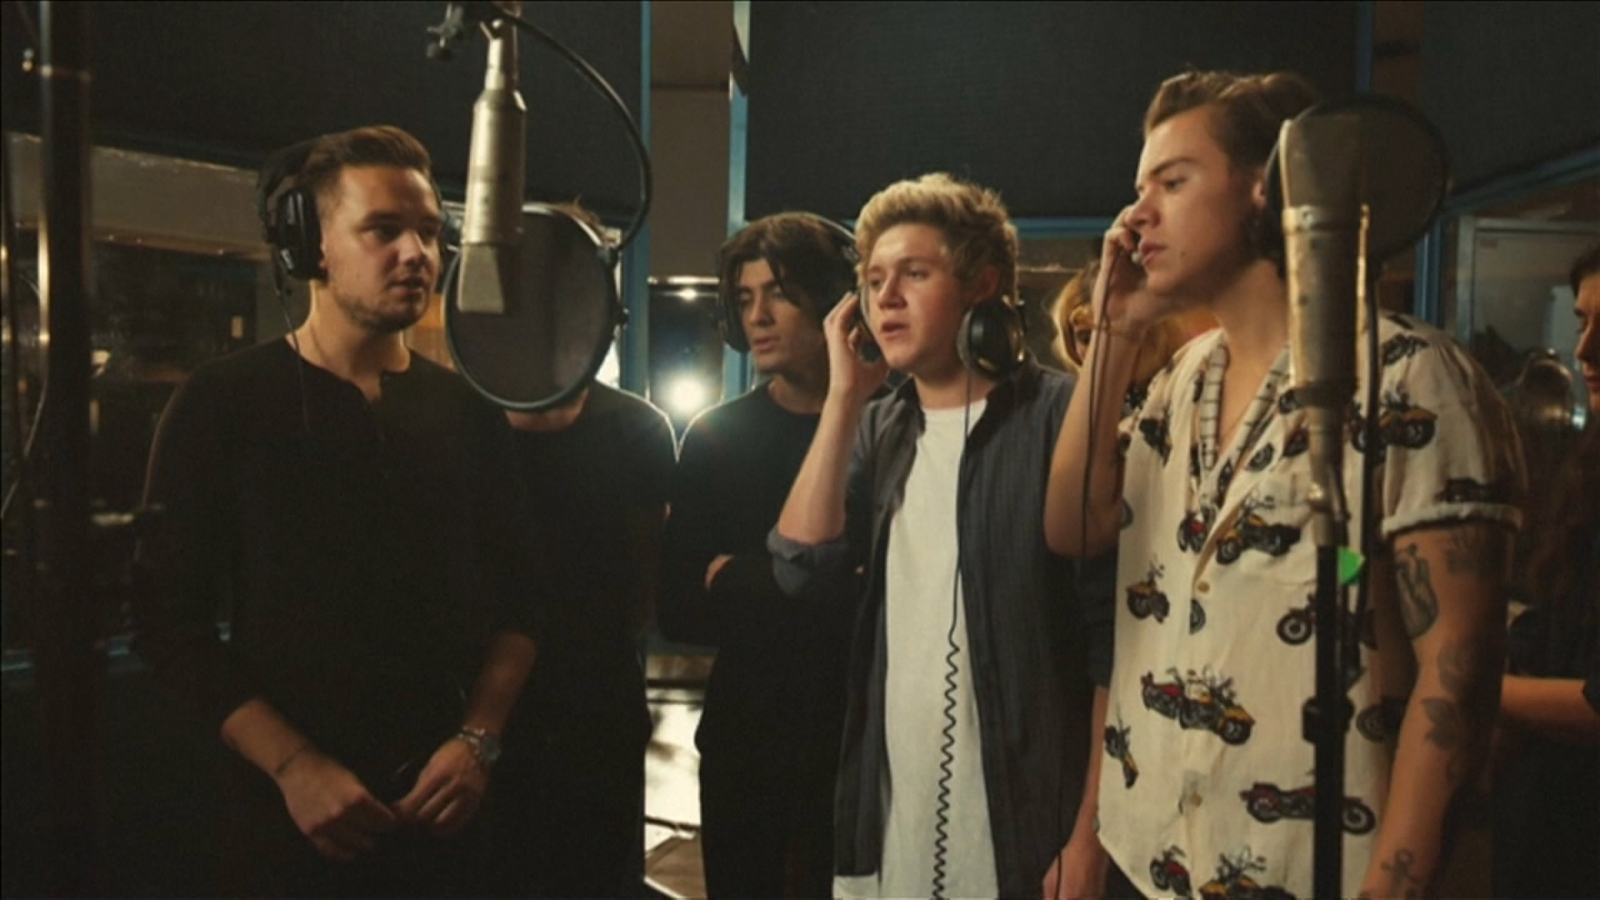 Band Aid 30: Do They Know It's Christmas? - Track Released